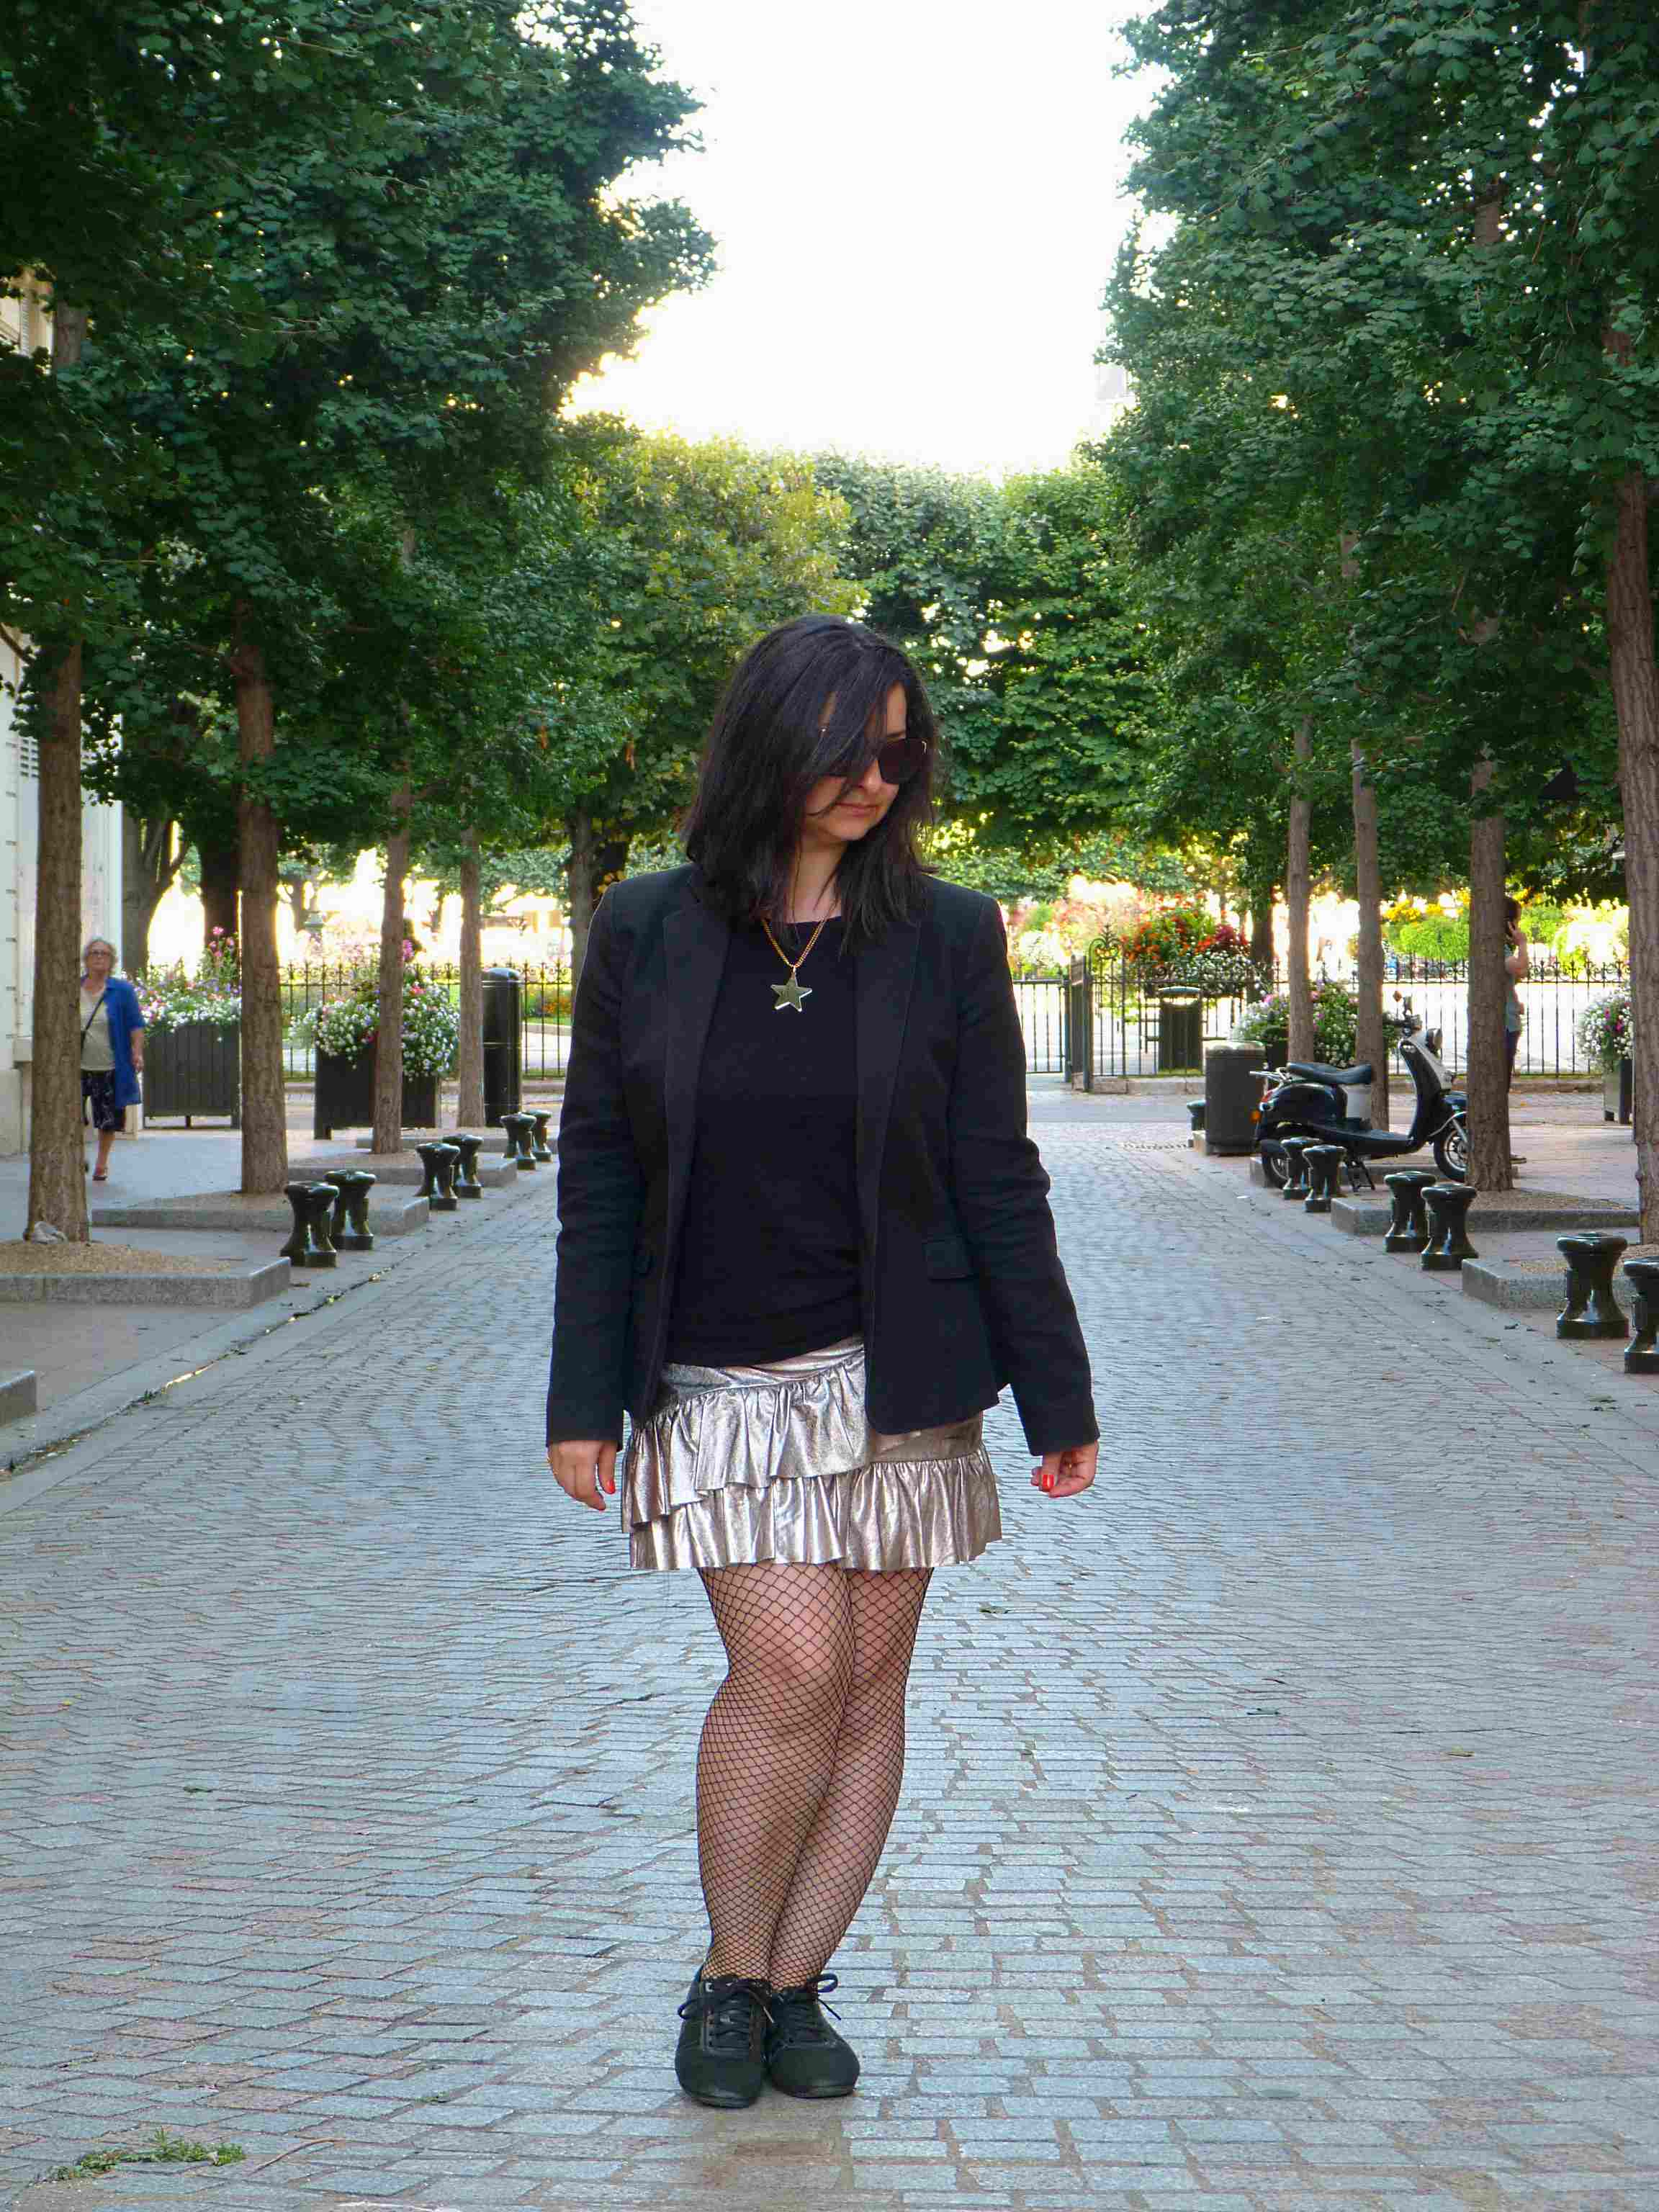 Metallic skirt - Pull & Bear (13)